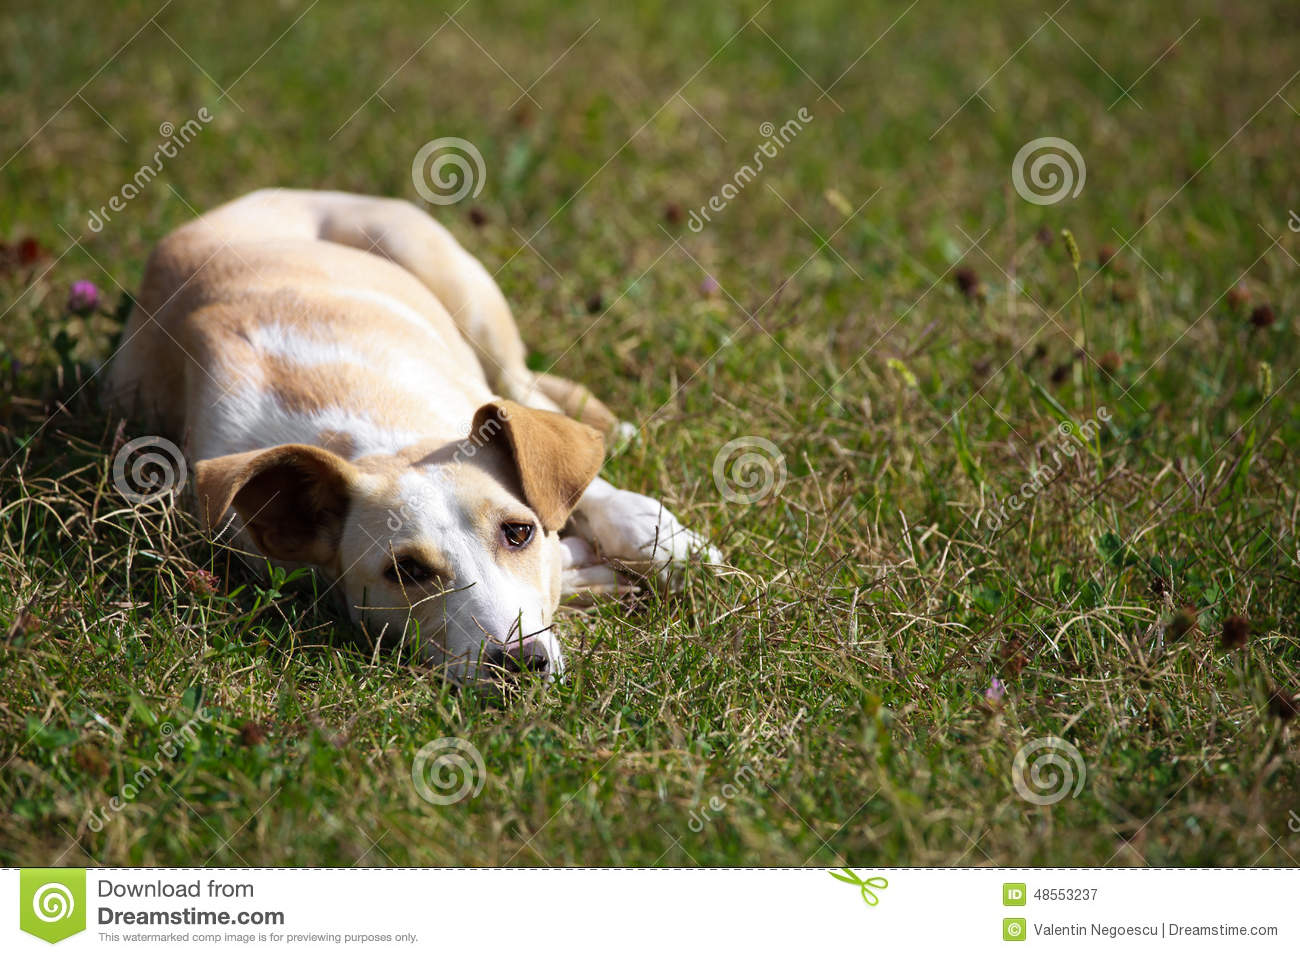 Dog relaxing and sprawling on the grass. Relaxing Dogs